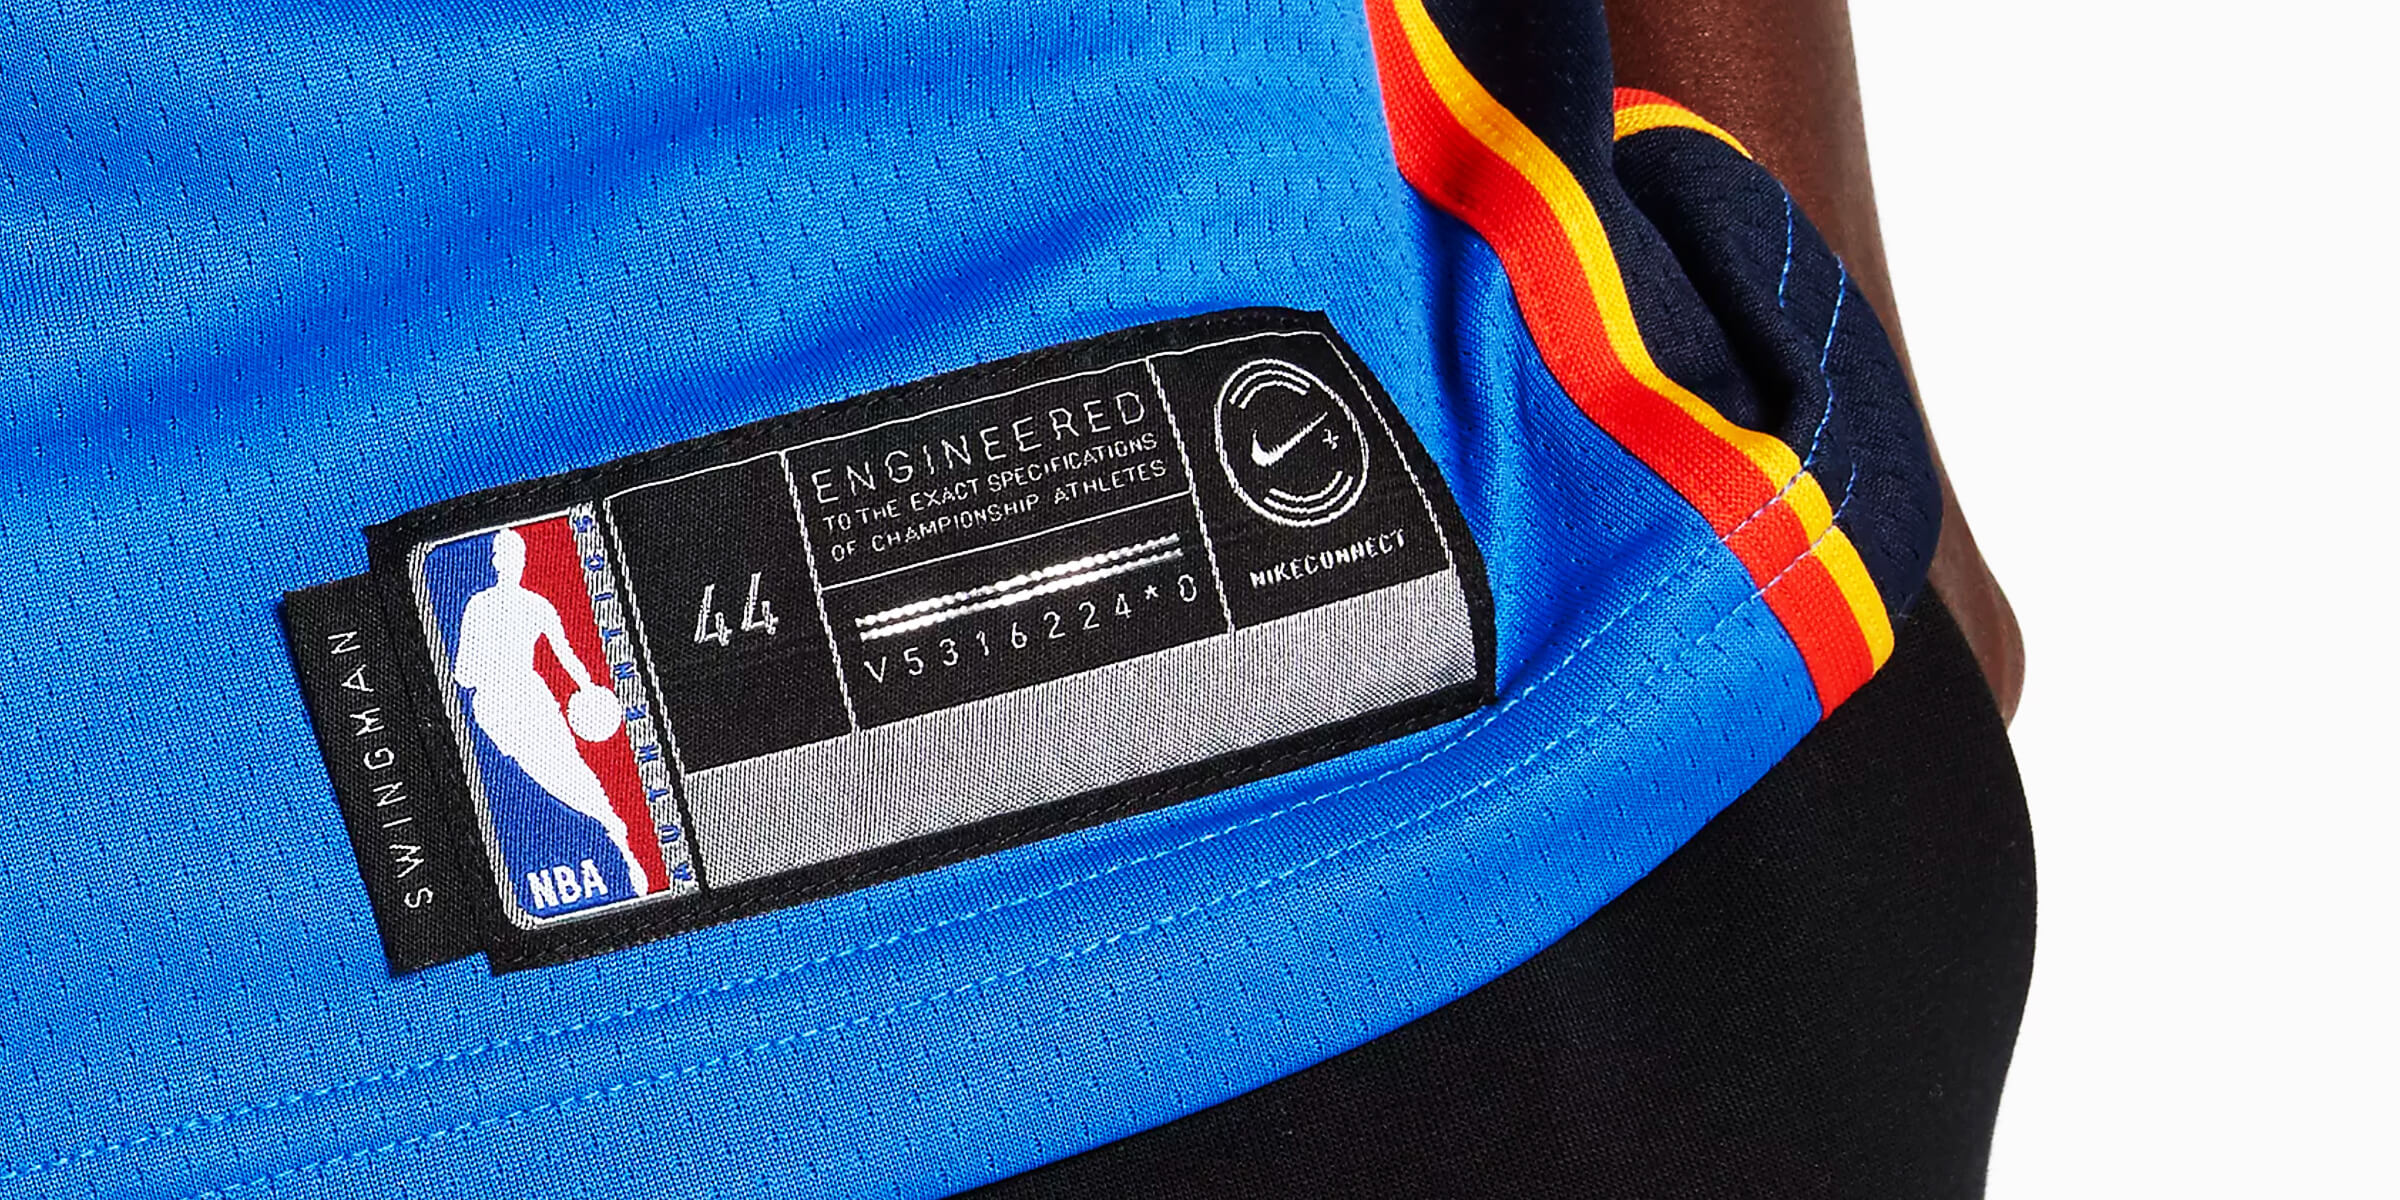 The first NBA connected jersey, featuring NikeConnect